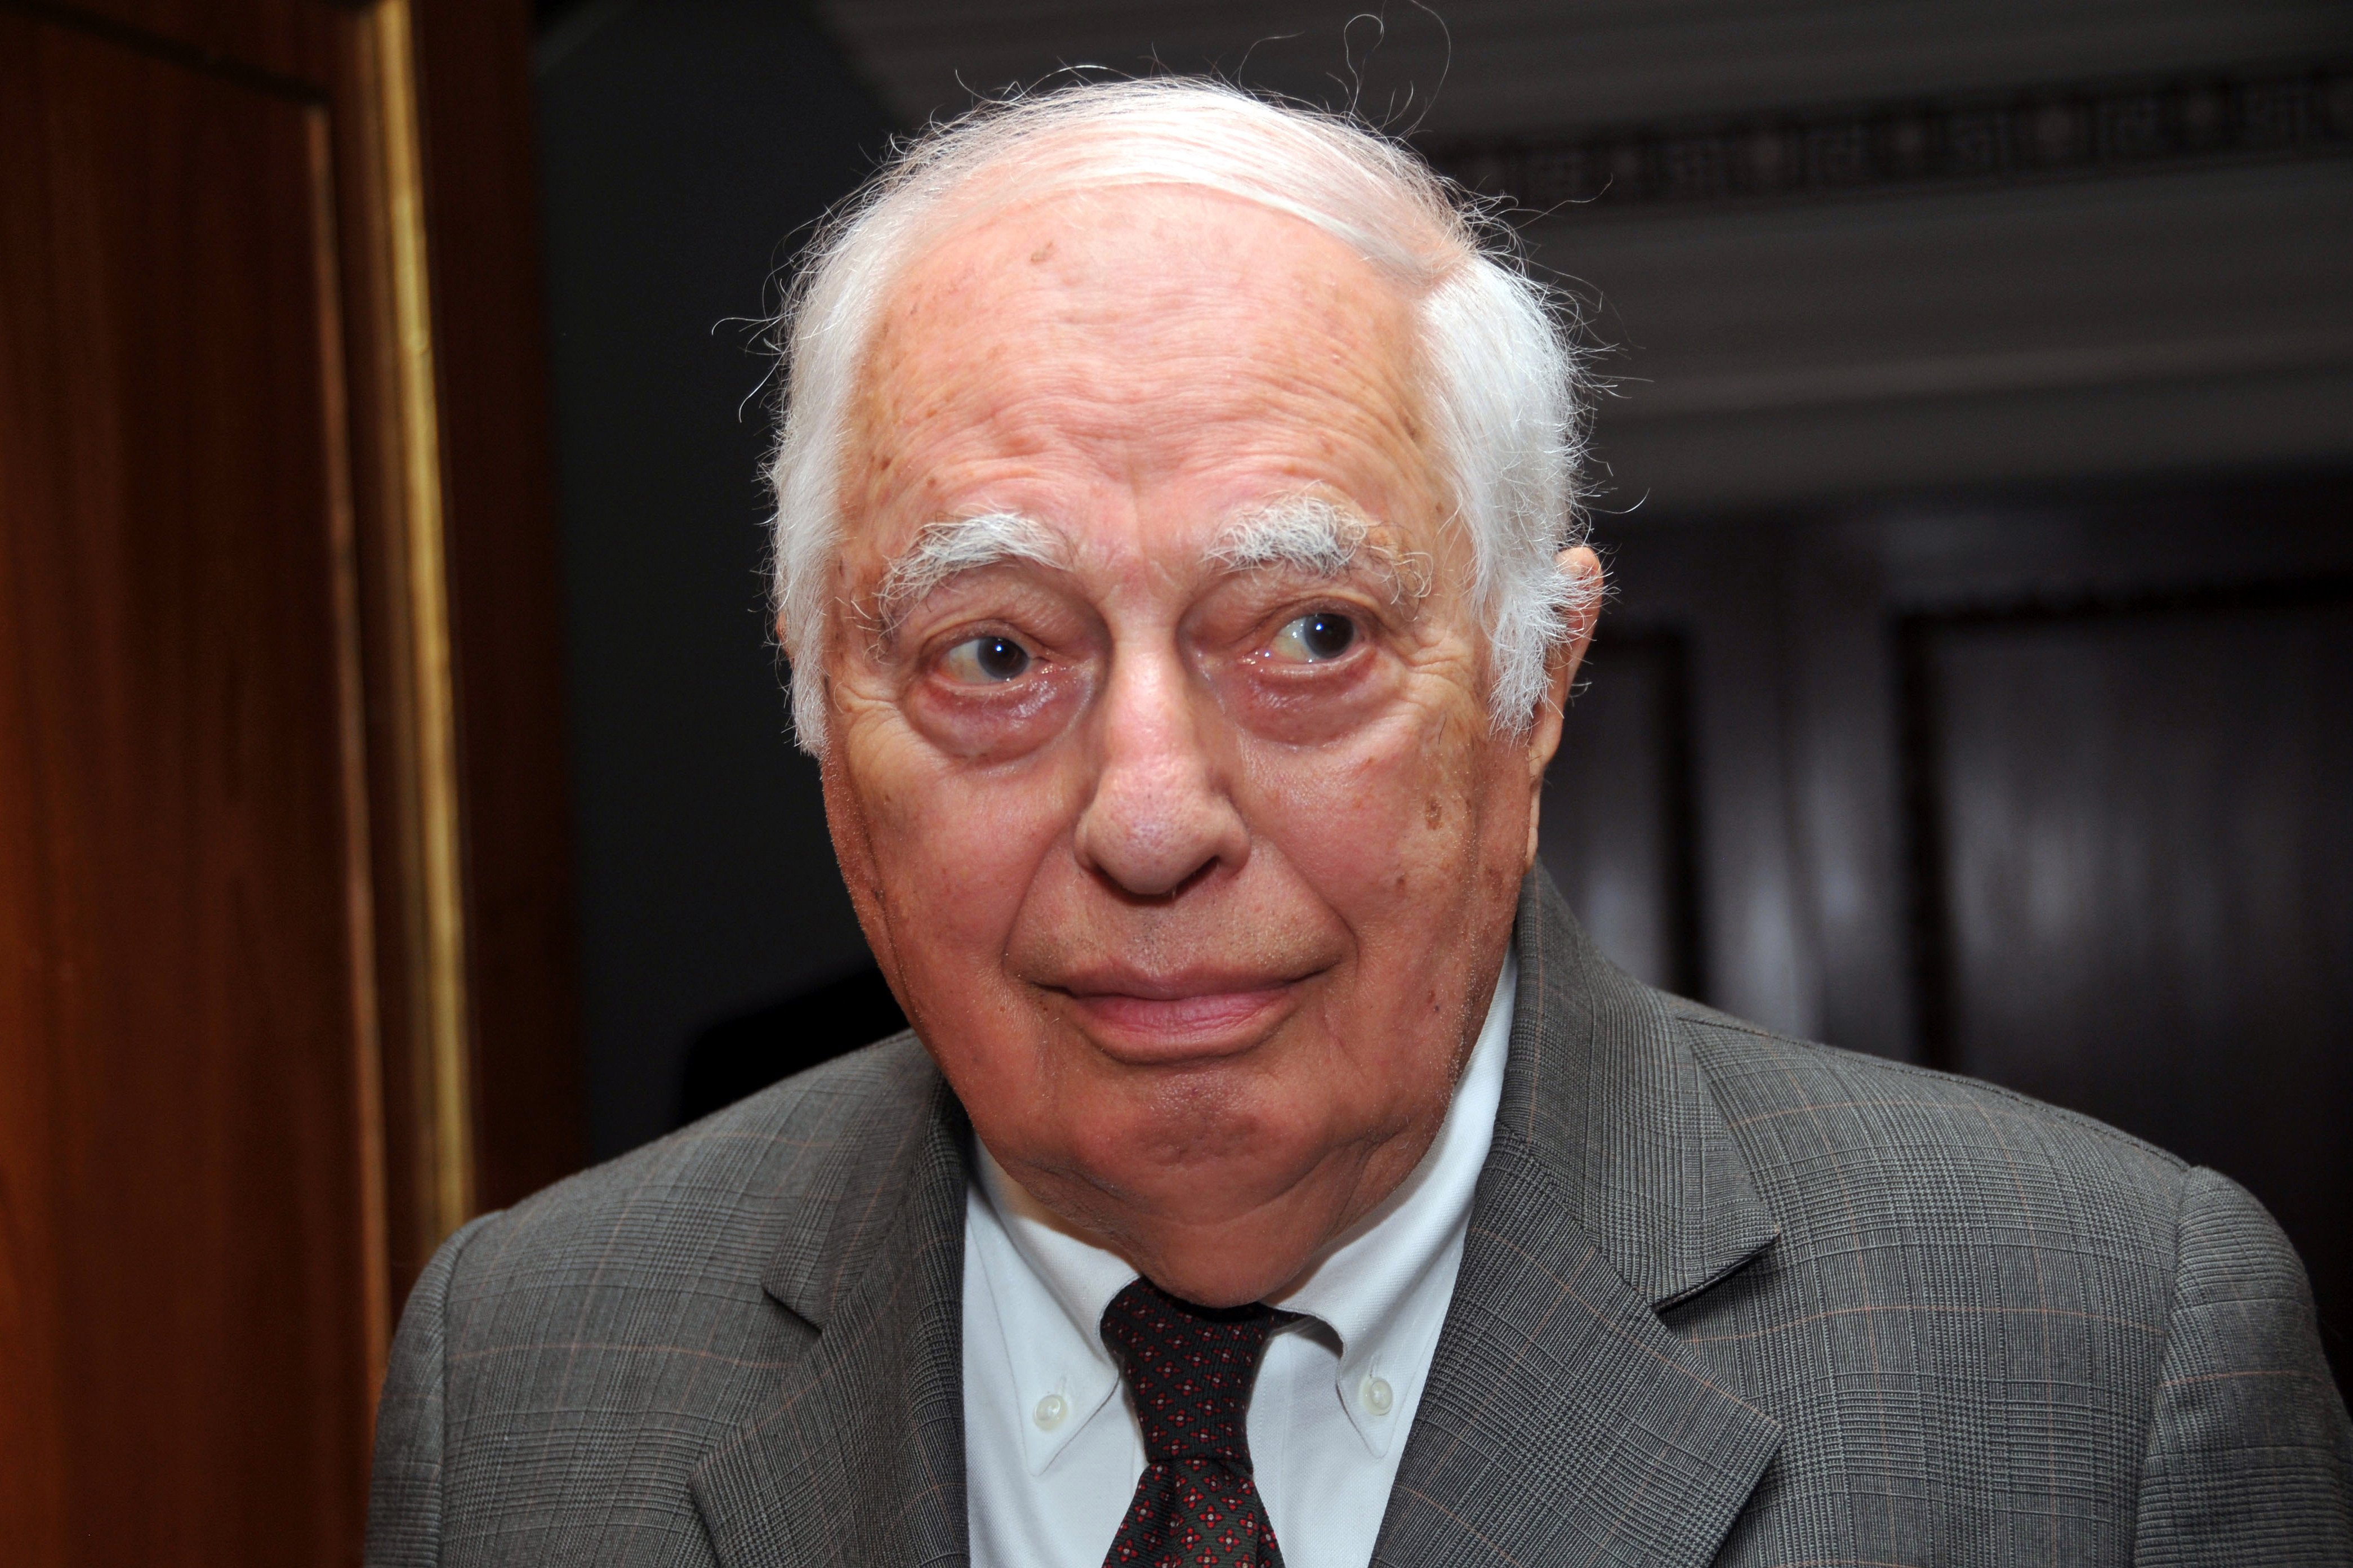 Bernard Lewis' prophecy, the school-shooter non-mystery and other comments